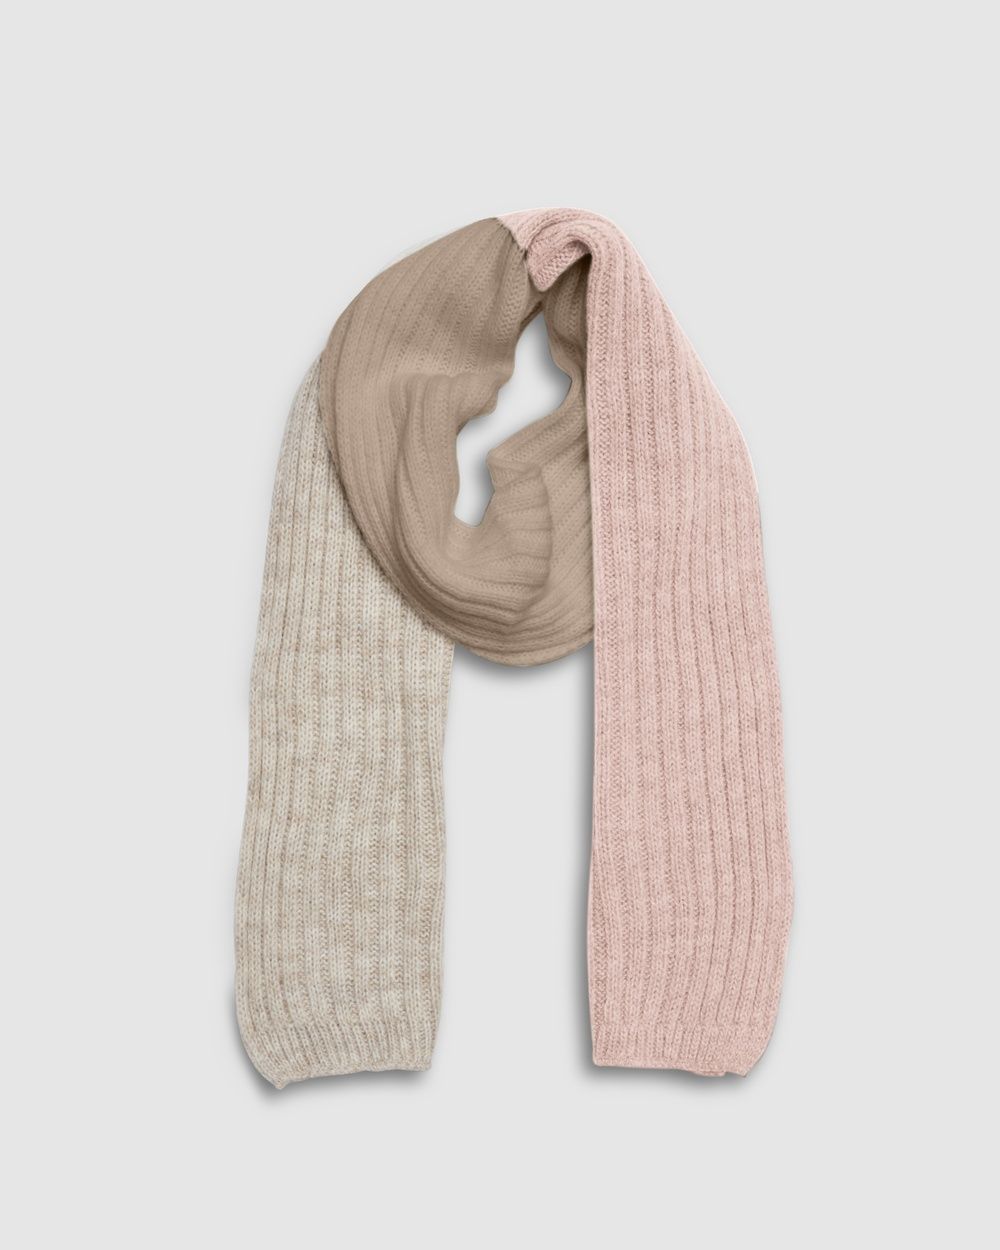 Kate & Confusion Block Scarf Scarves Gloves Pink